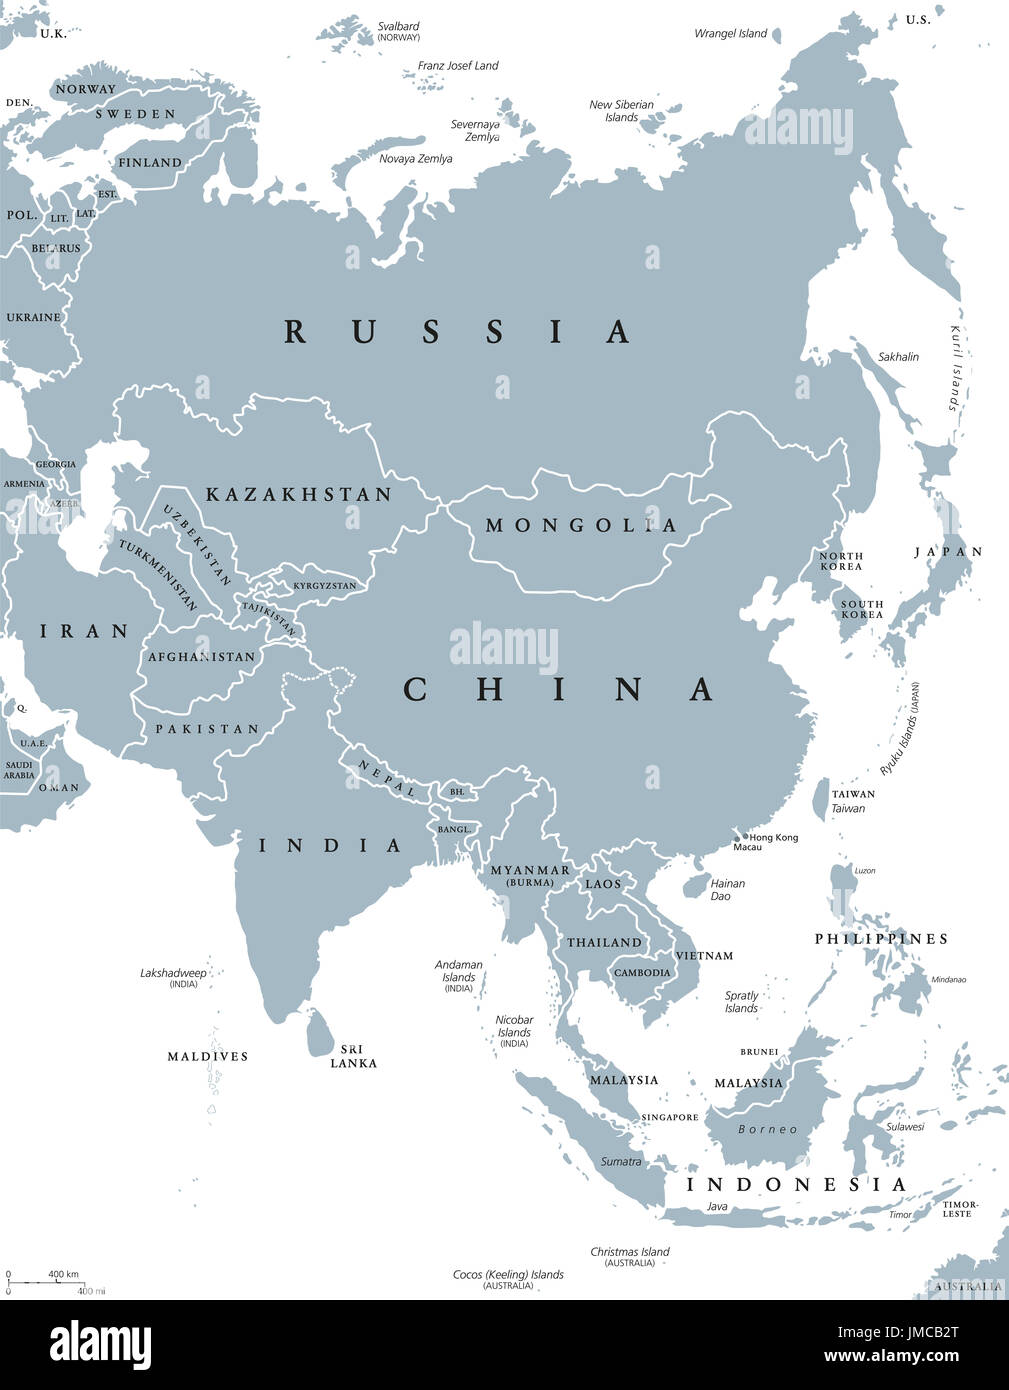 Map Of Asia With Countries Labeled.Asia Political Map With Borders And Countries Largest And Most